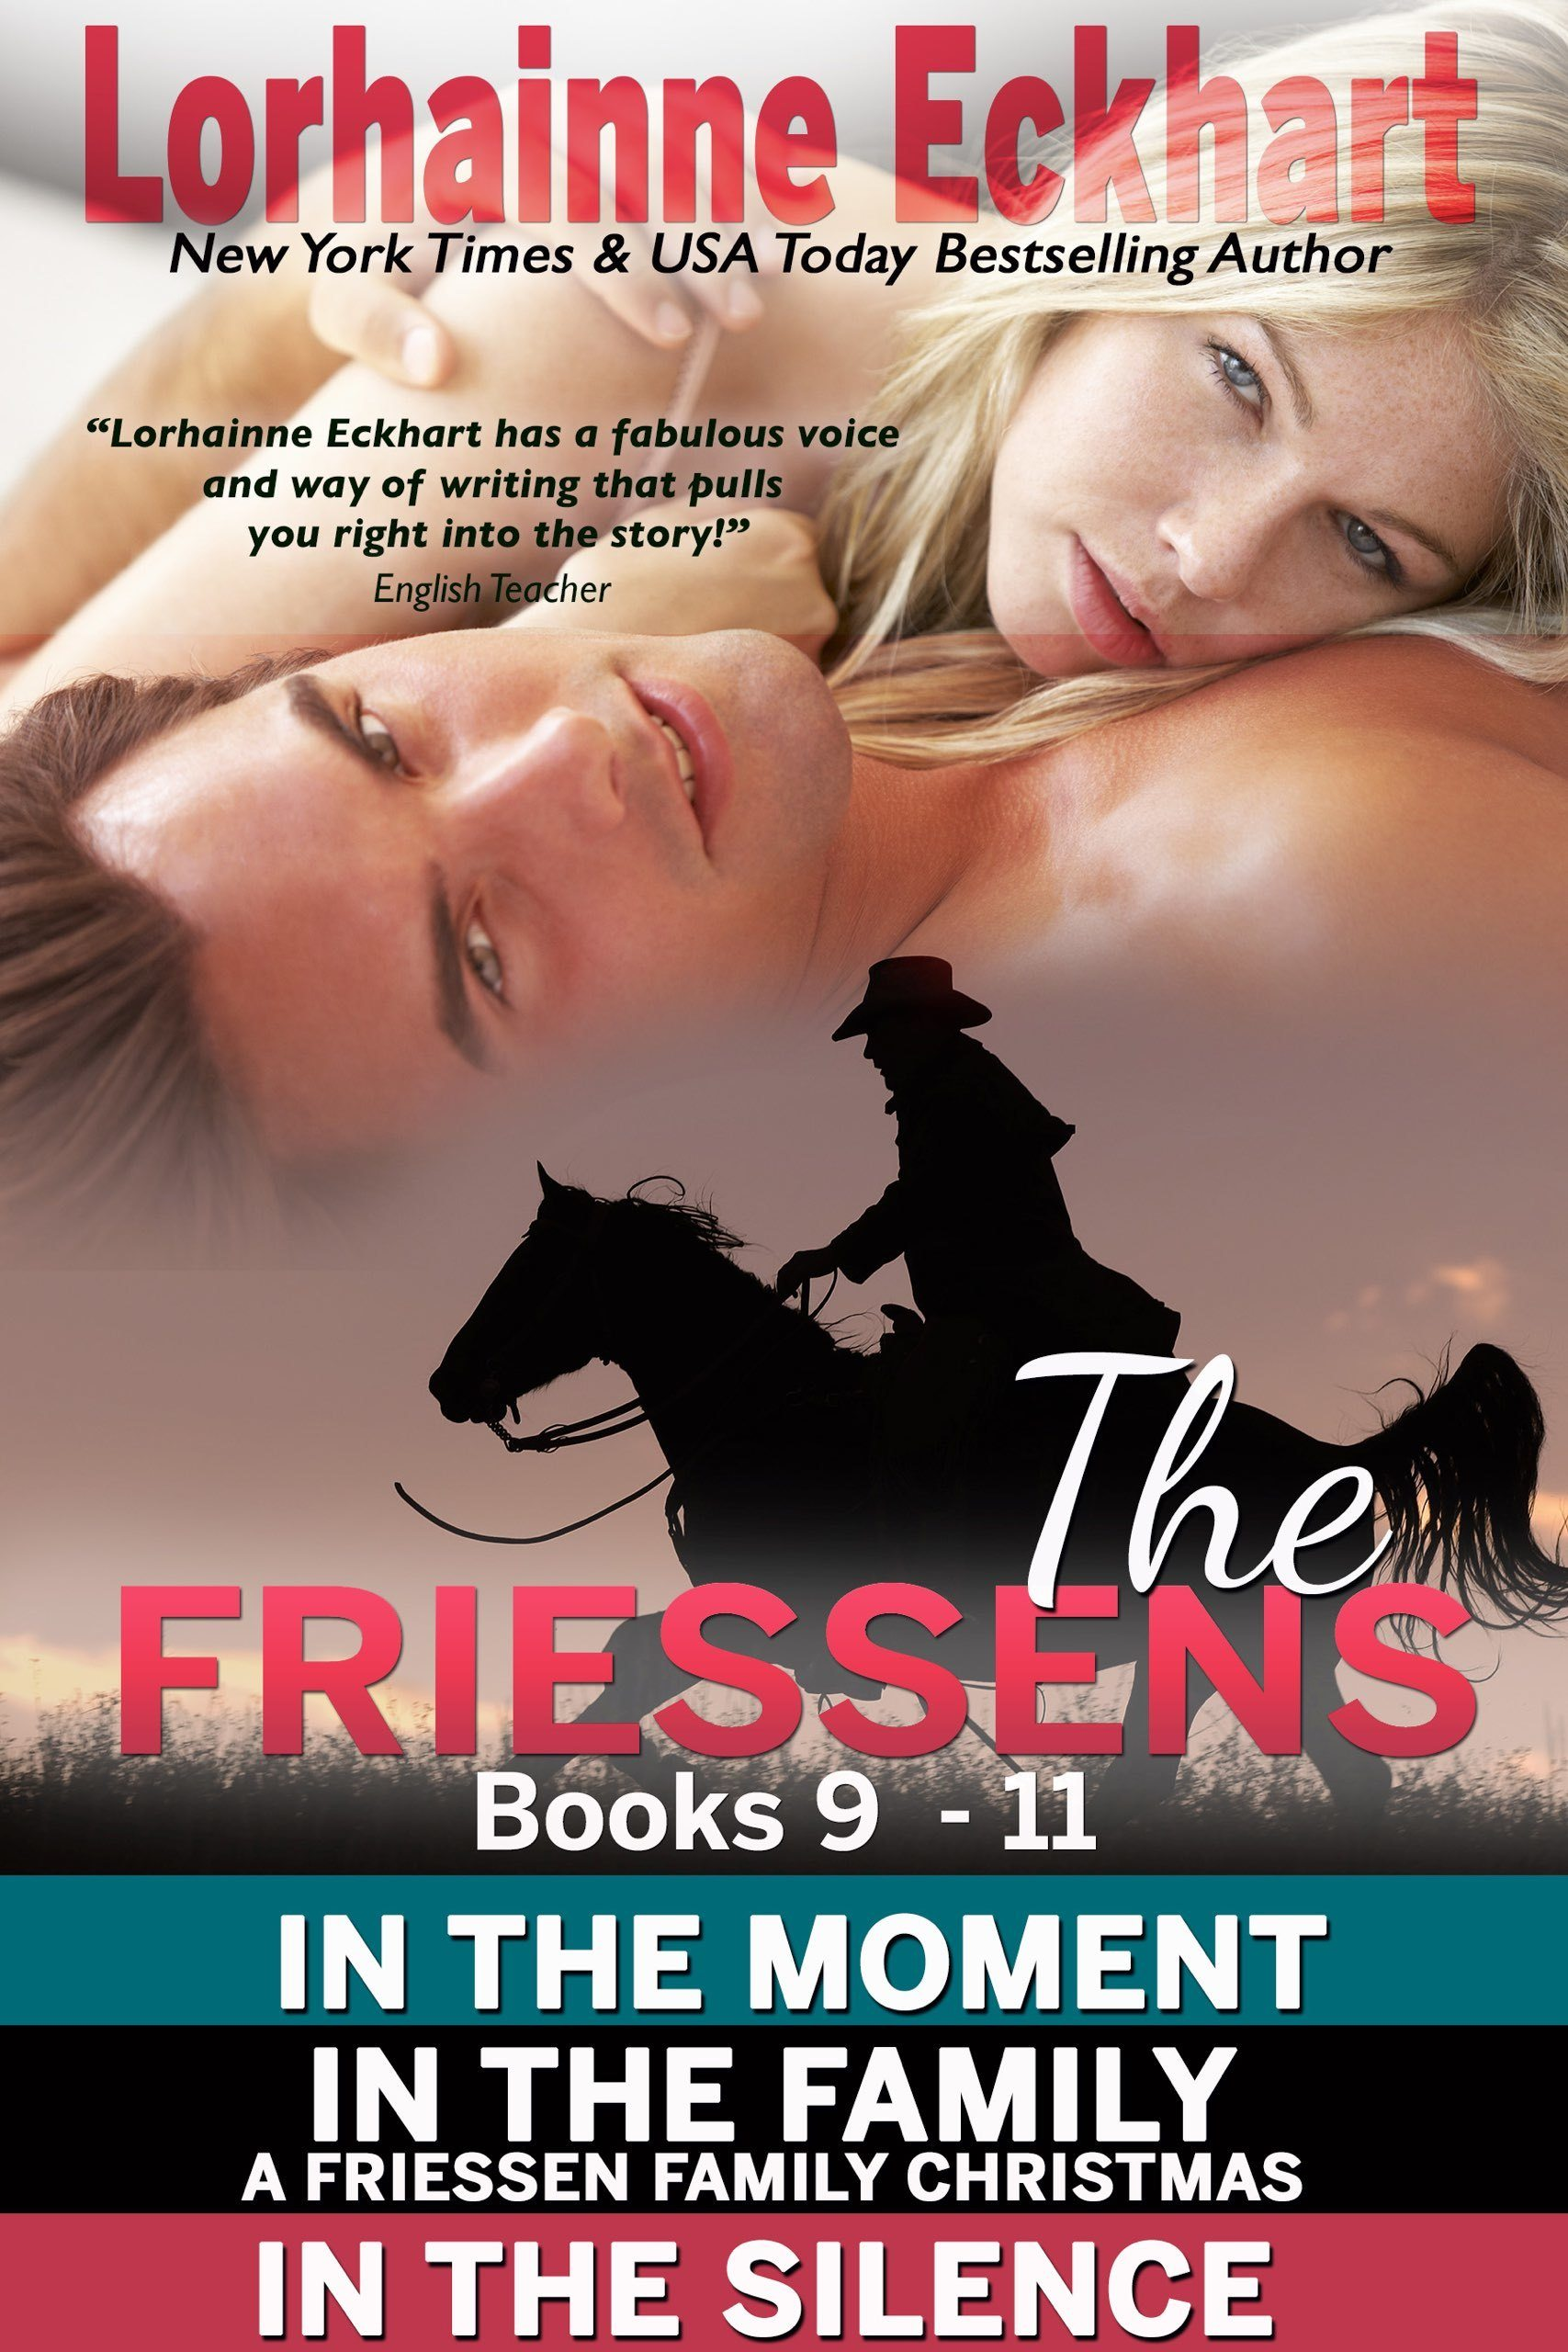 The Friessens Books 9 – 11